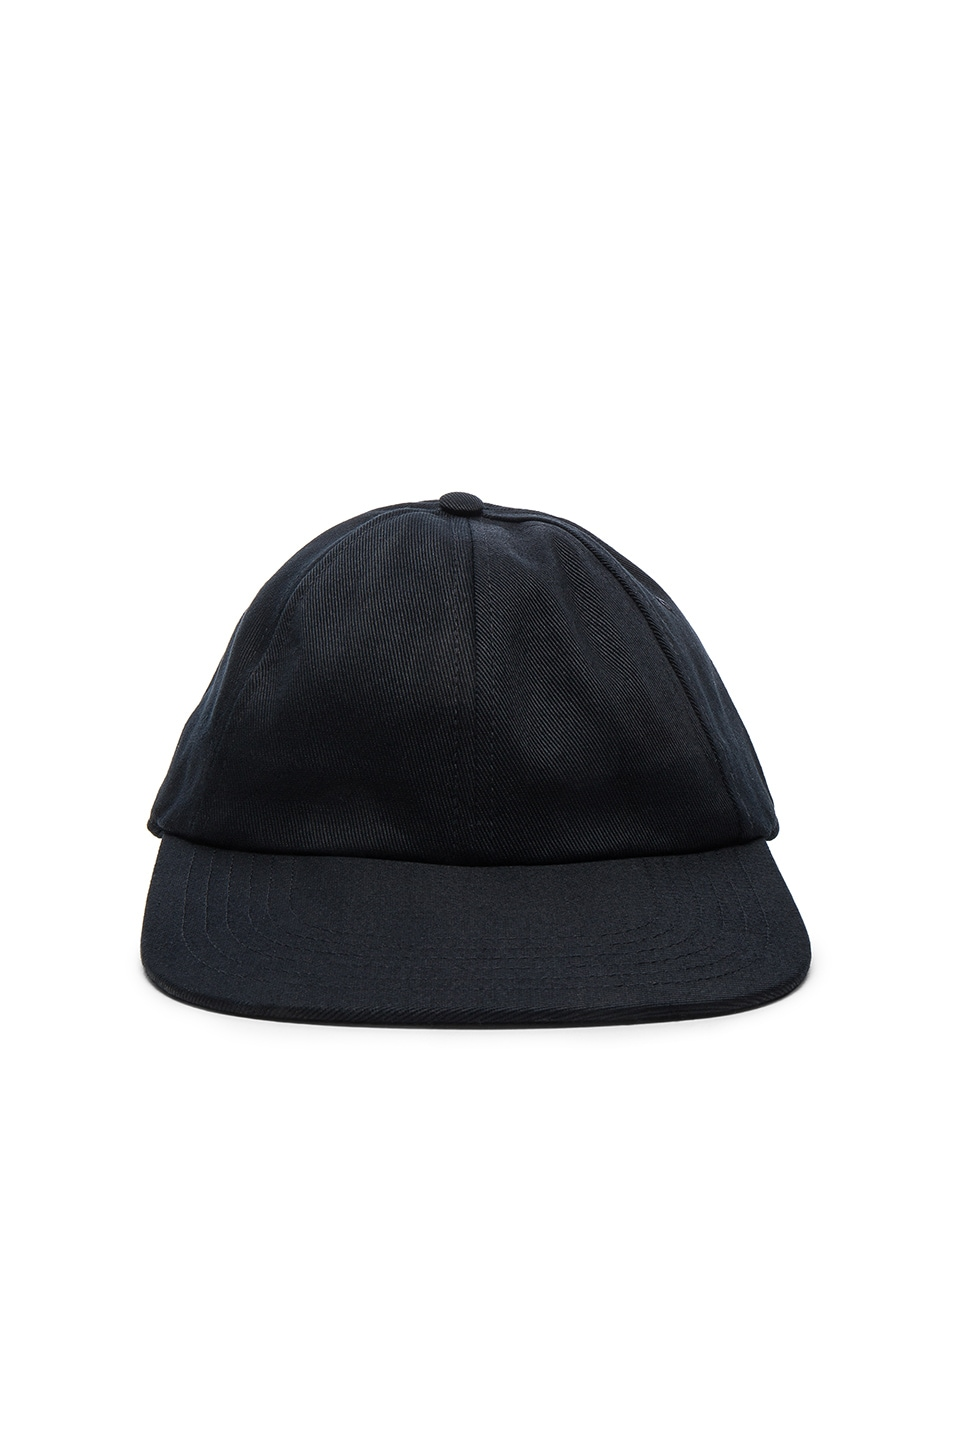 Logo Cap in Black VETEMENTS P64O2